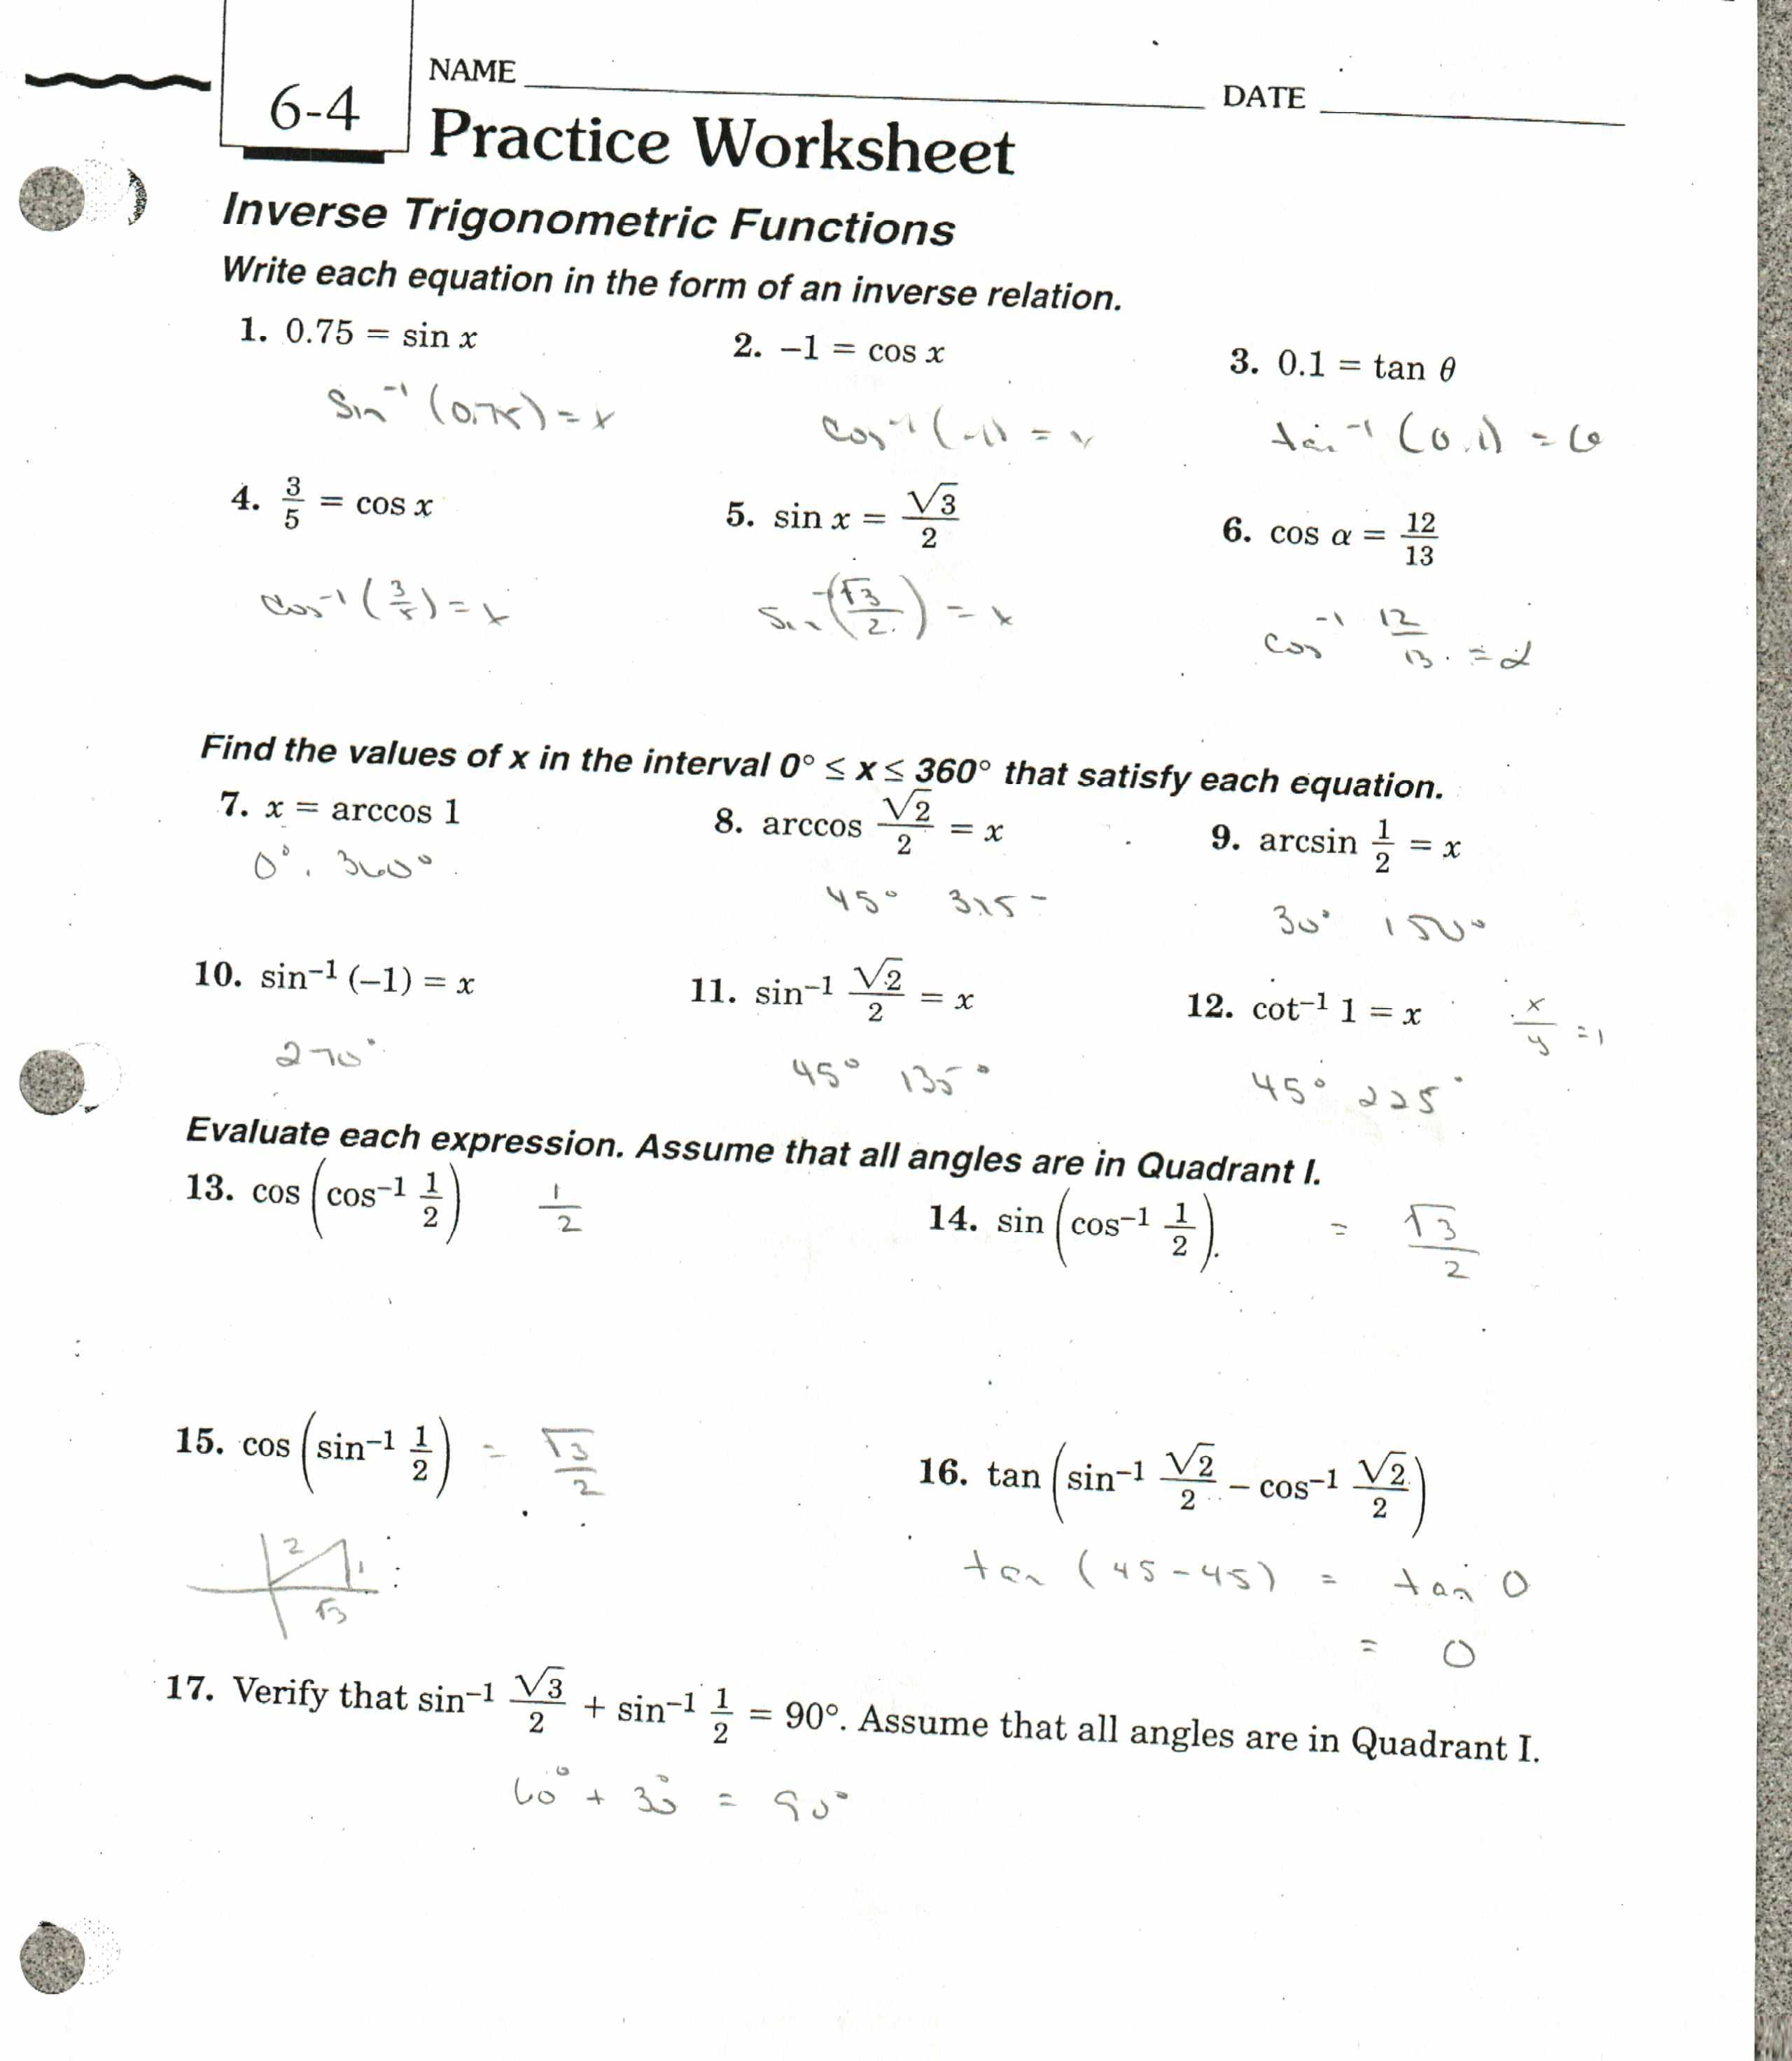 Inverse Functions Worksheet Answer Key as Well as Inverse Functions Worksheet Answers Choice Image Worksheet for